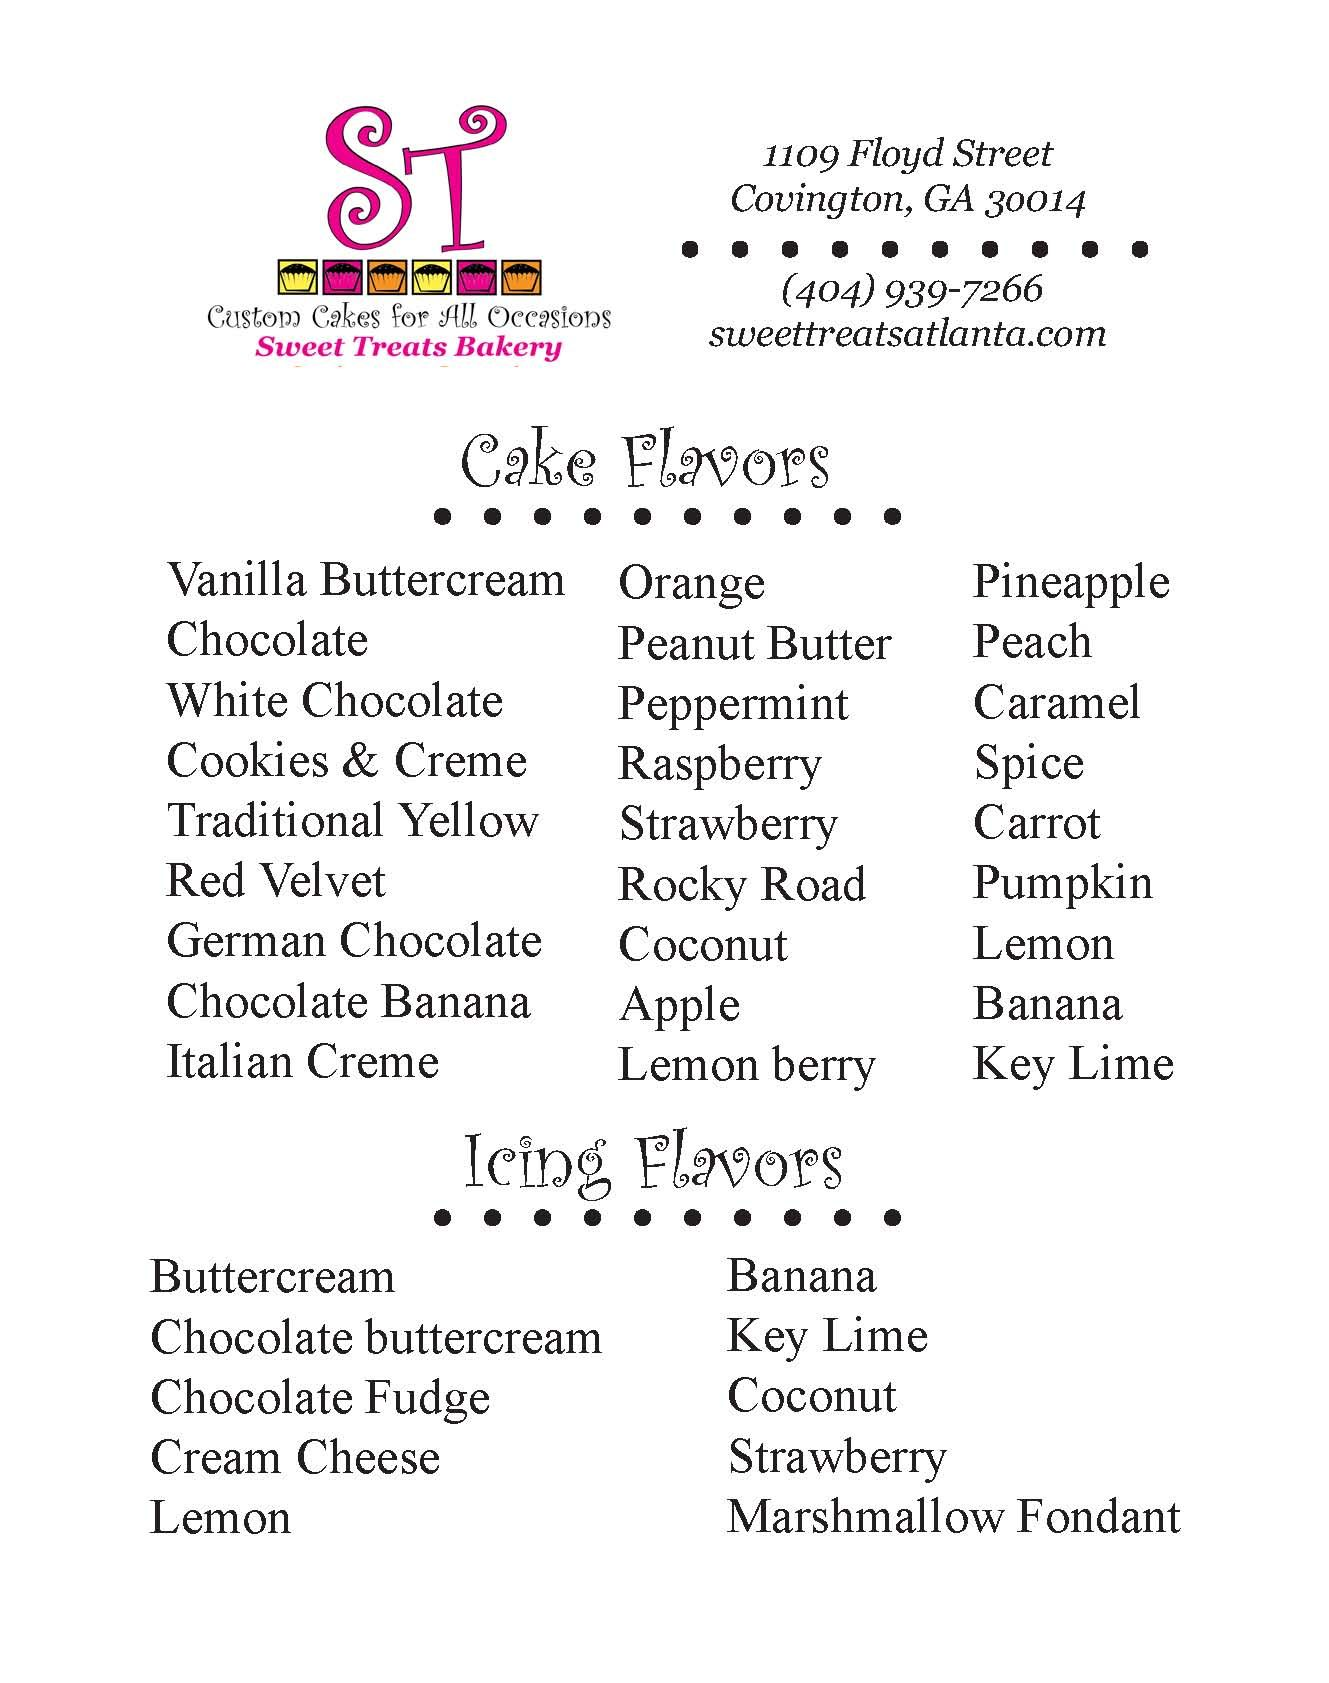 Wedding Cake Flavors And Fillings List Great Dessert Pinterest